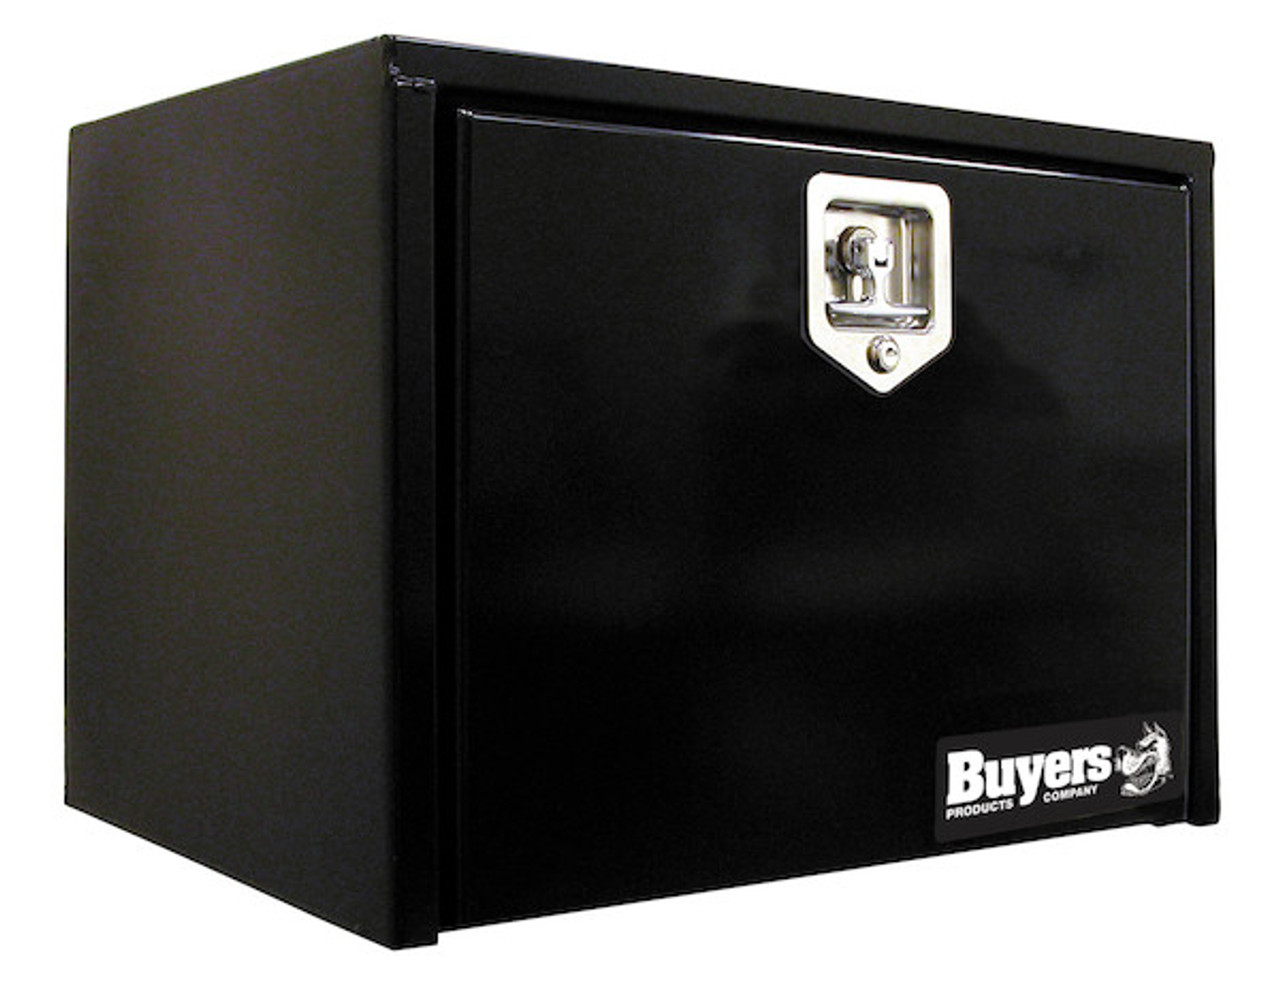 1703353 BUYERS PRODUCTS BLACK STEEL UNDERBODY TRUCK BOX WITH T-LATCH TOOLBOX